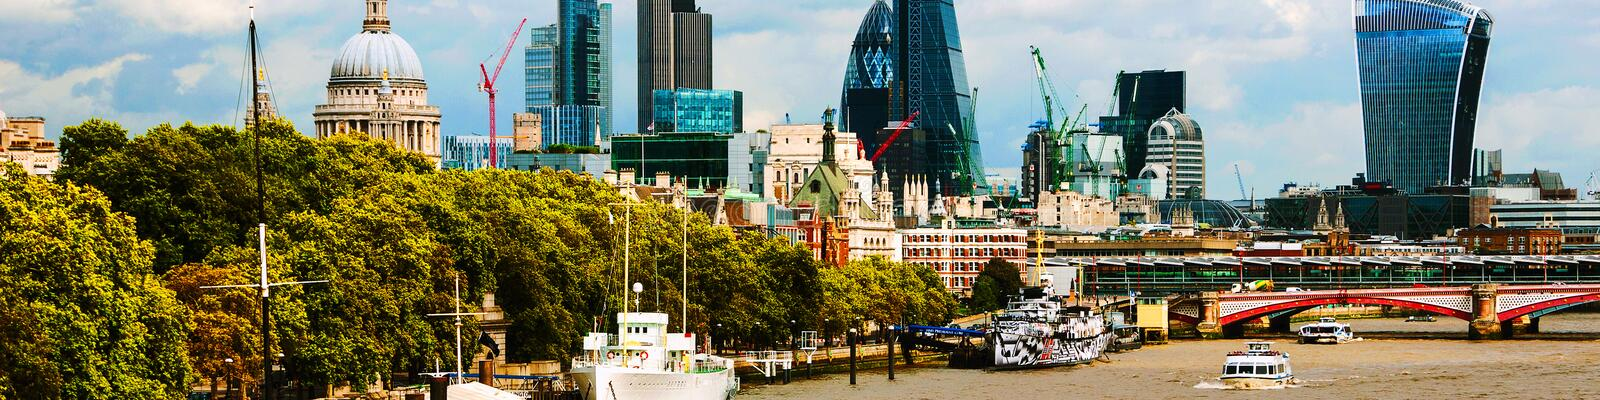 Cityscape with St Paul Cathedral and modern buildings of London City, UK stock images